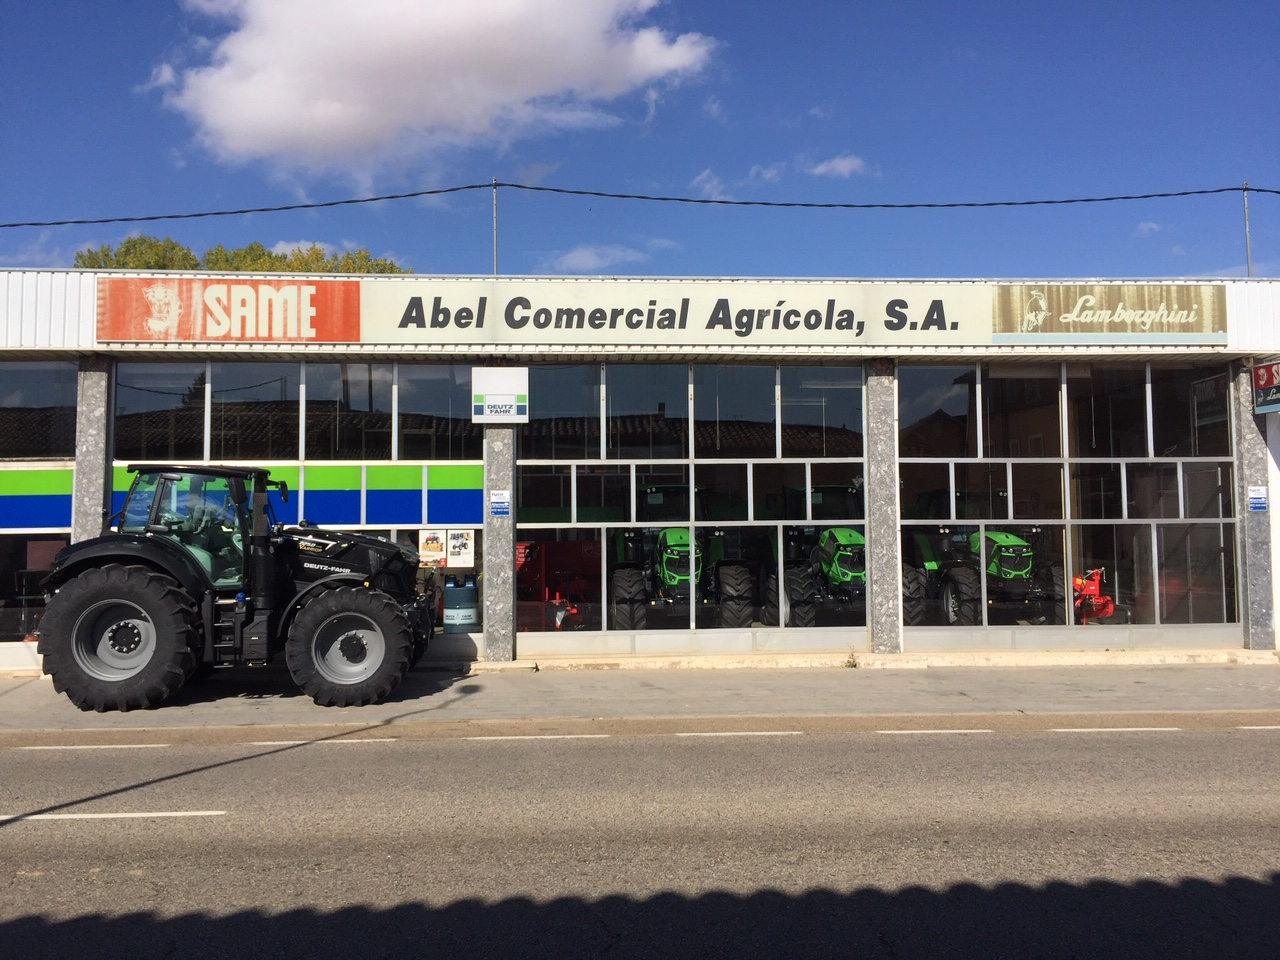 ABEL COMERCIAL AGRICOLA S.A.